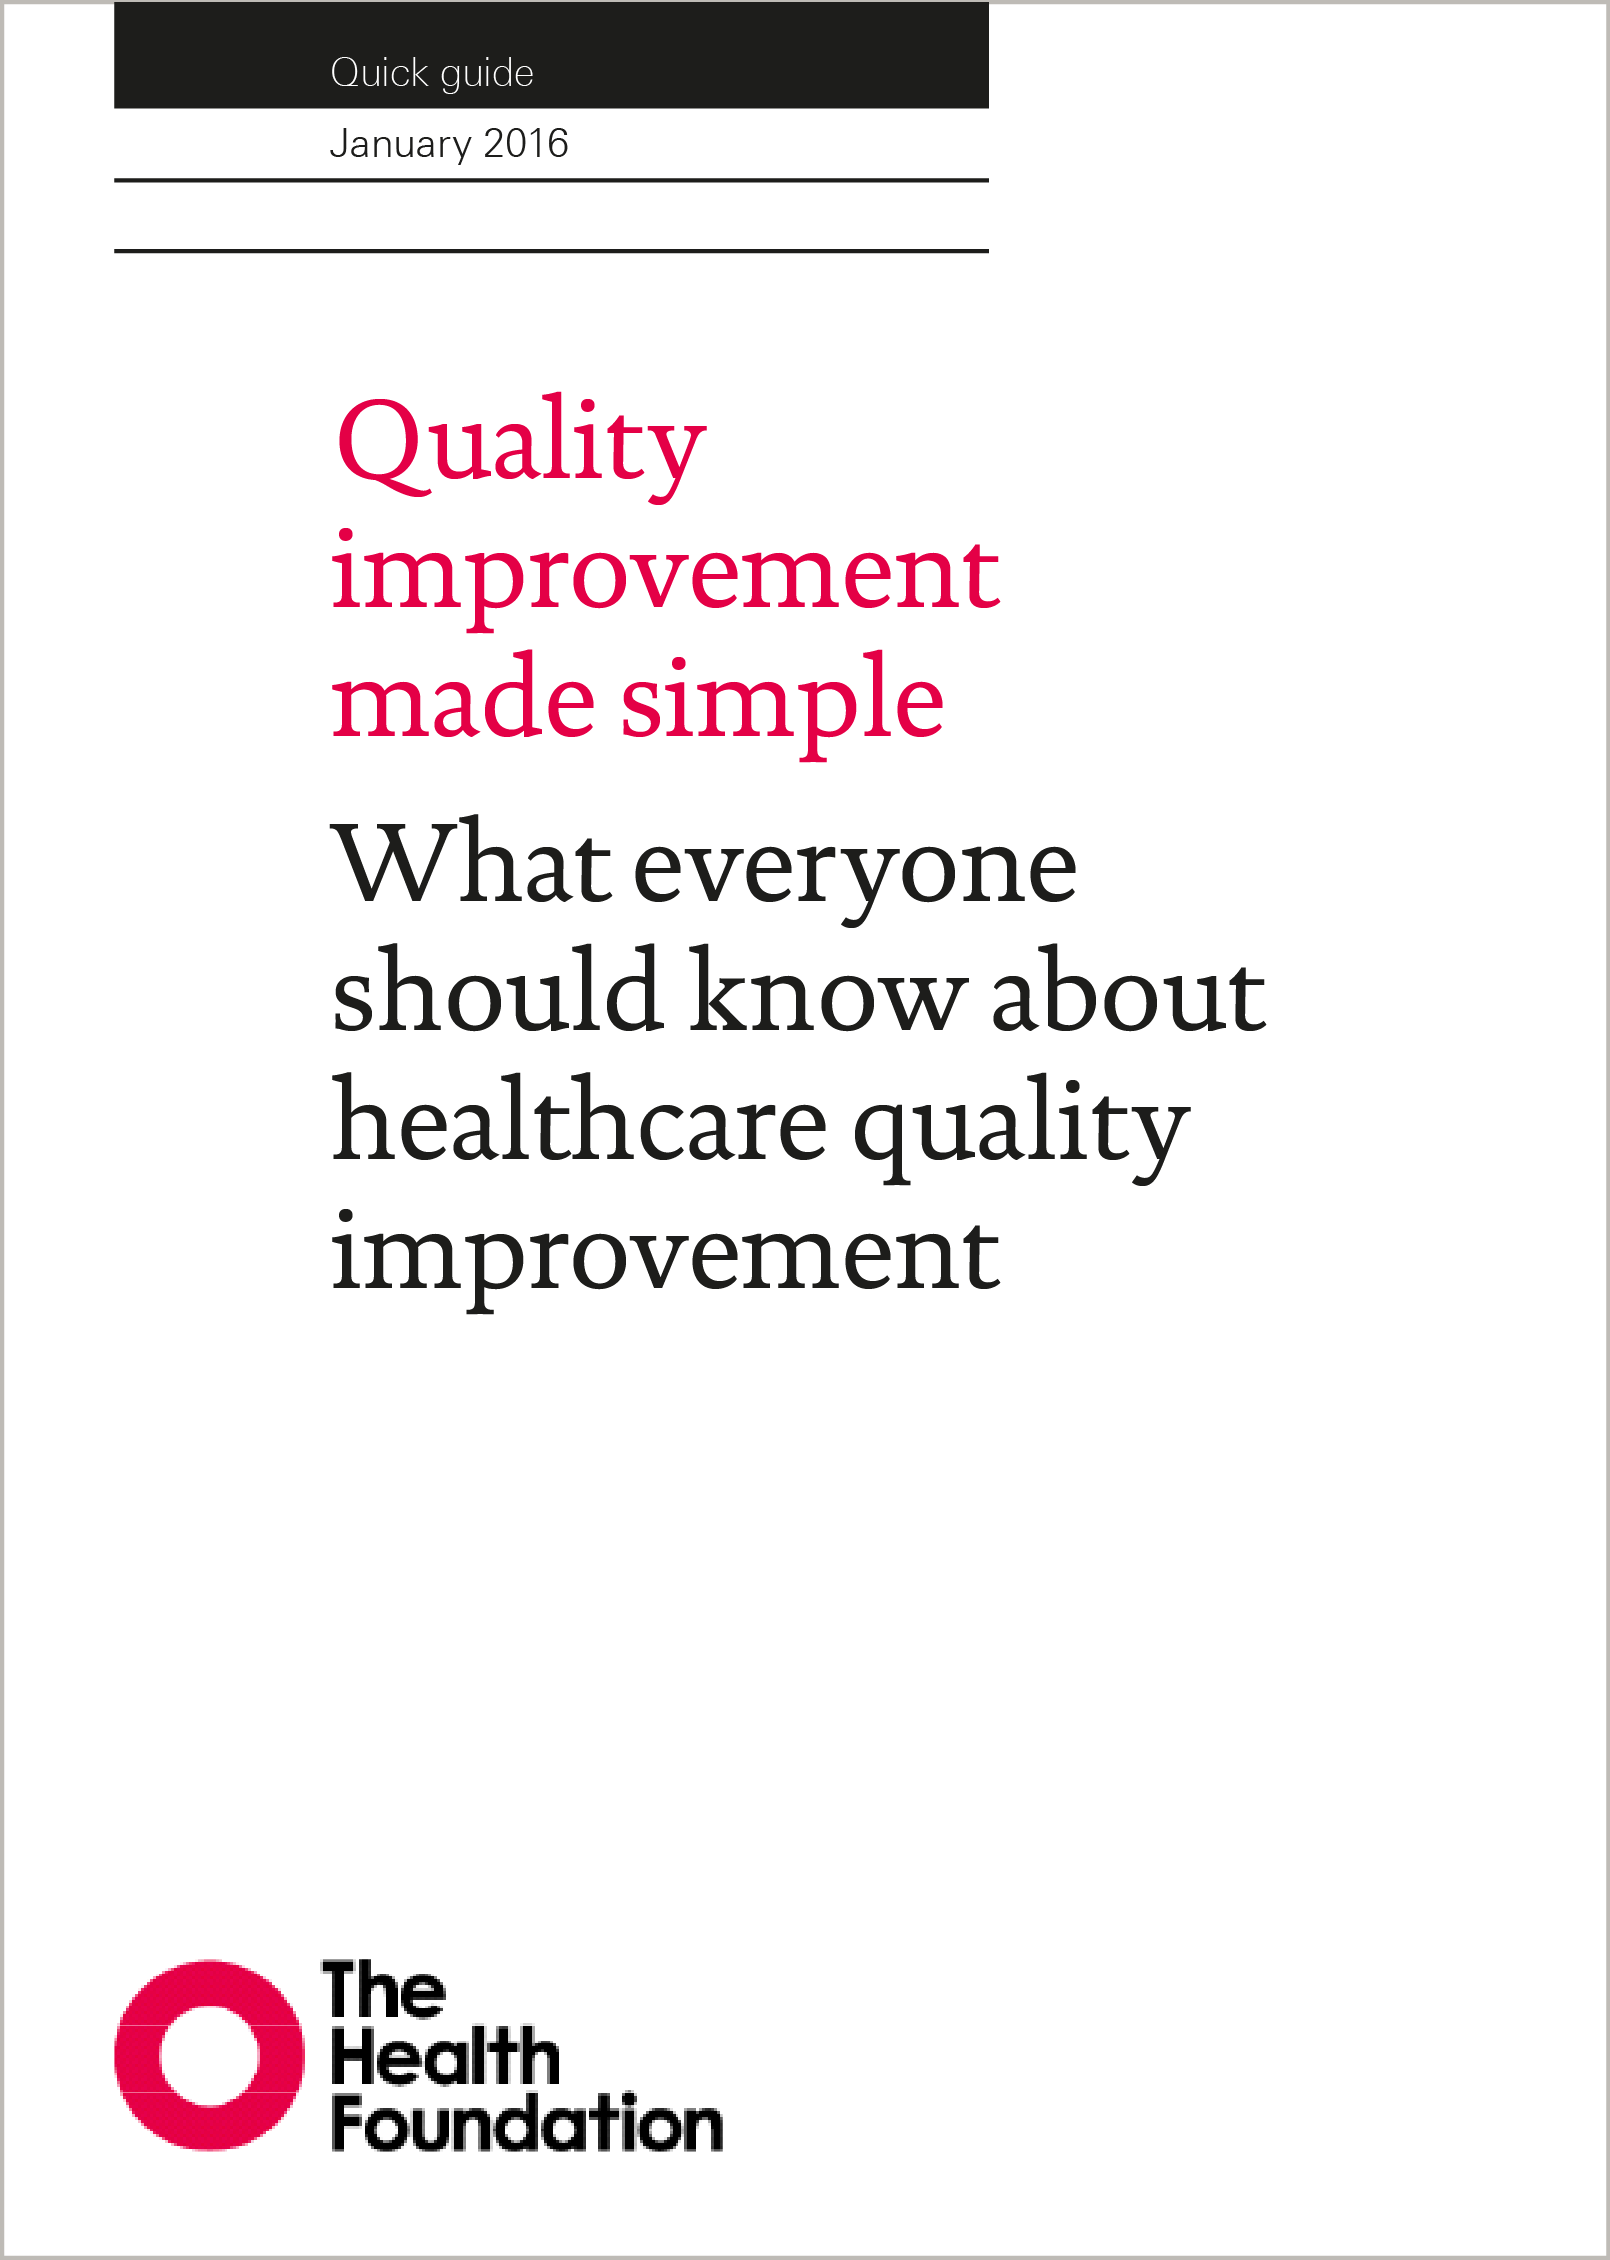 Quality improvement made simple | The Health Foundation